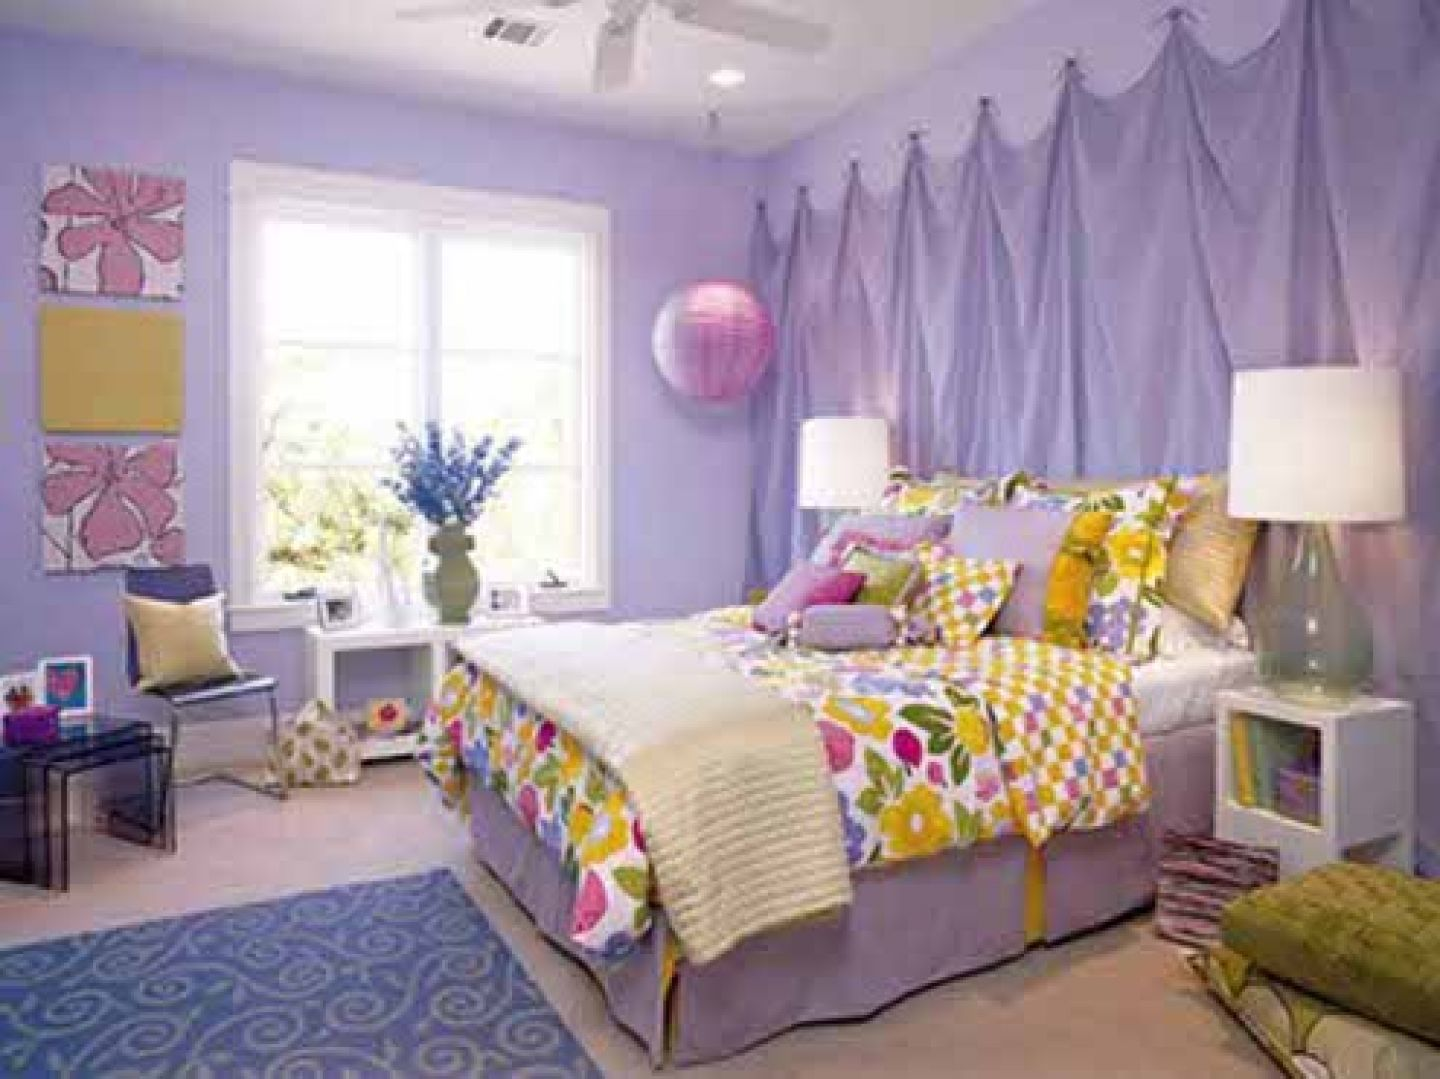 decor for teenage bedrooms - Teenage Bedroom Decorating Ideas On A Budget